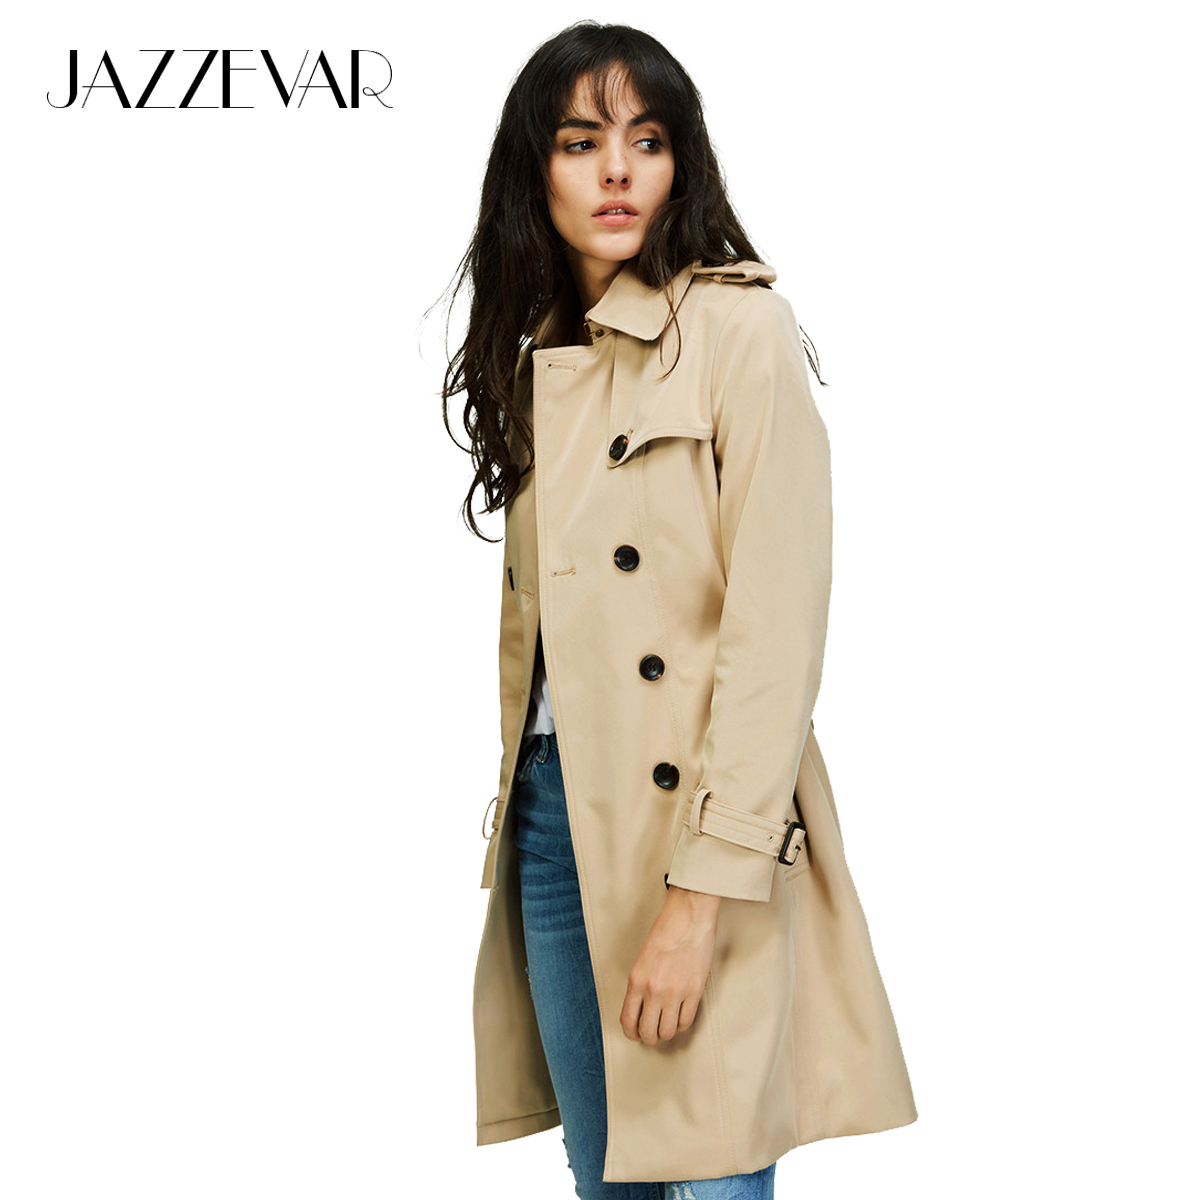 JAZZEVAR 2019 Autumn New High Fashion Brand Woman Classic Double Breasted Trench Coat Waterproof Raincoat Business Outerwear(China)